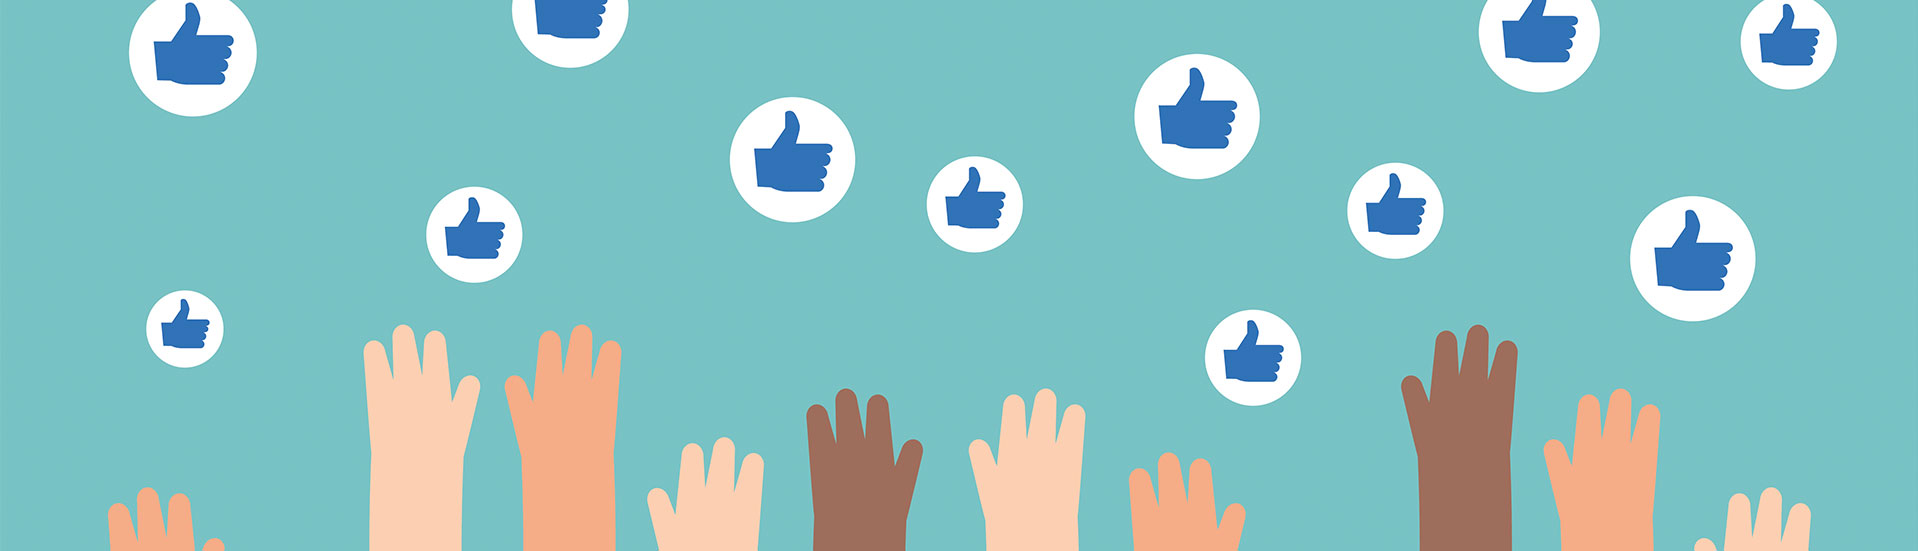 7 Easy Ways to Increase Facebook Engagement Organically